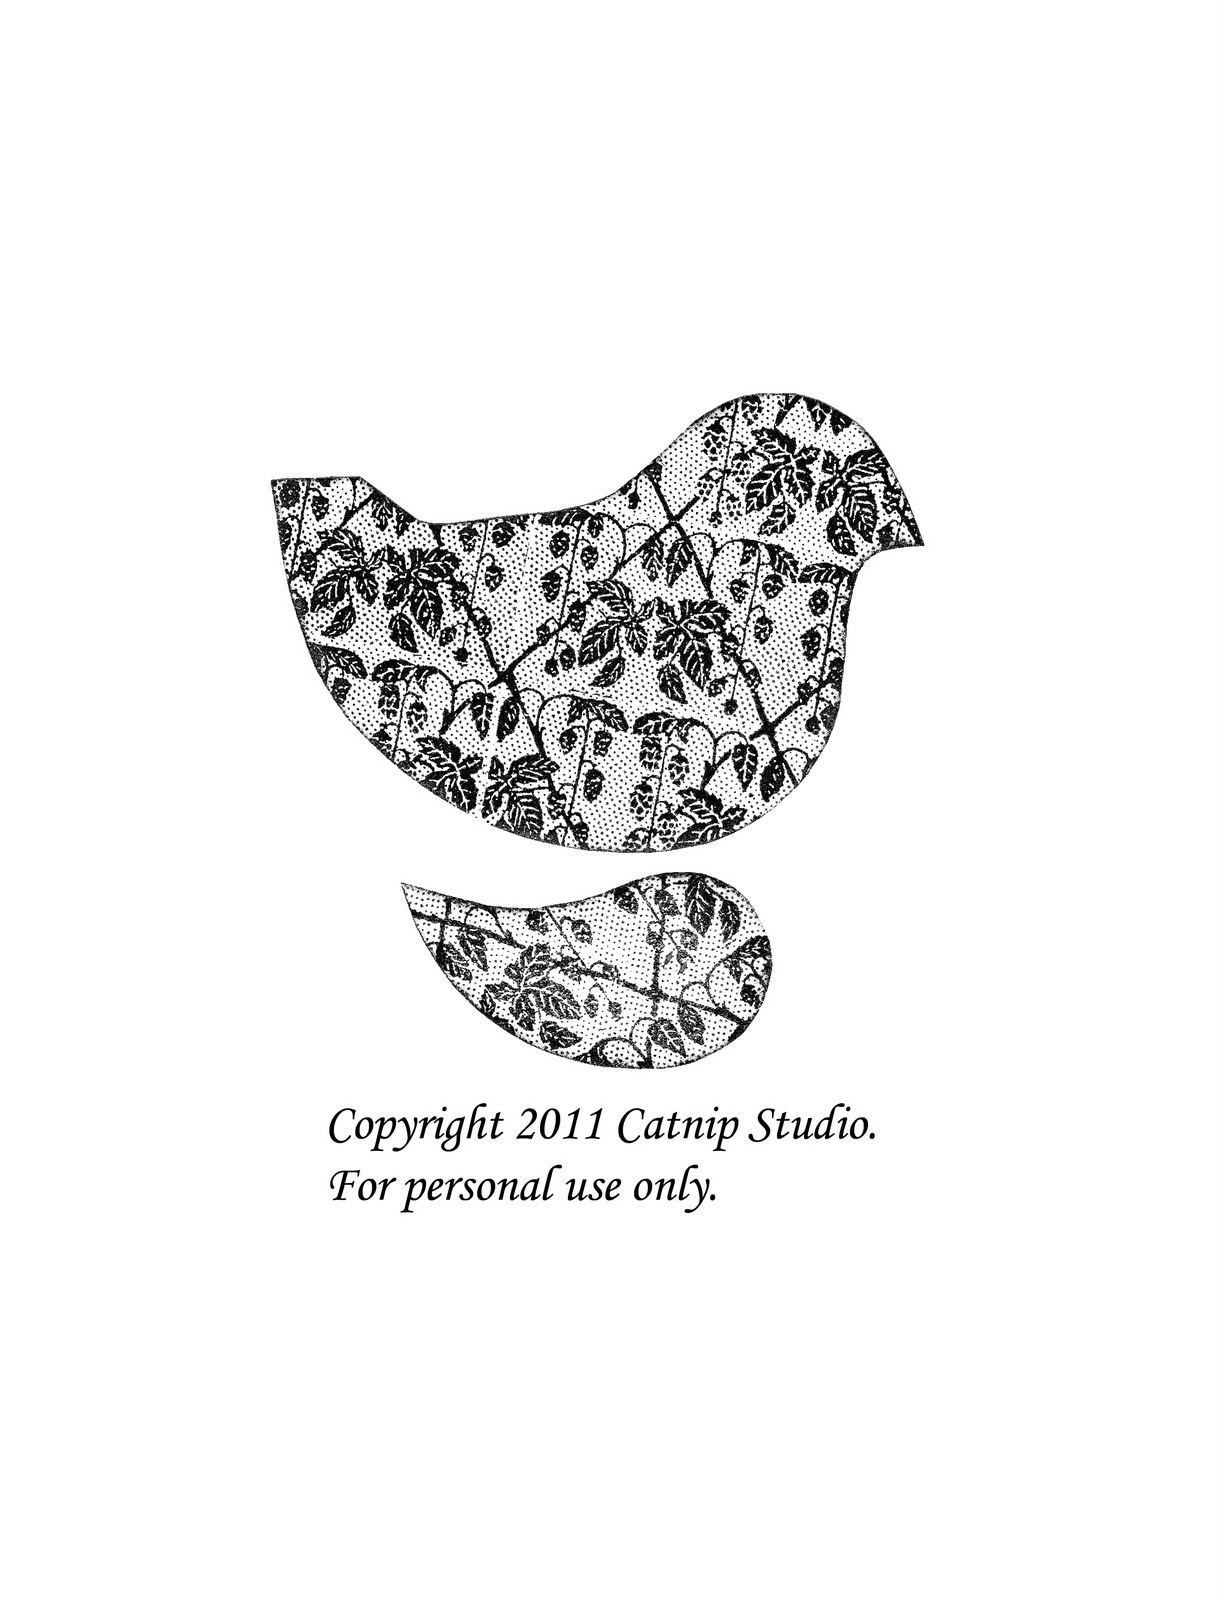 Catnip studio chronicles french hens turtle doves and a for Turtle dove template